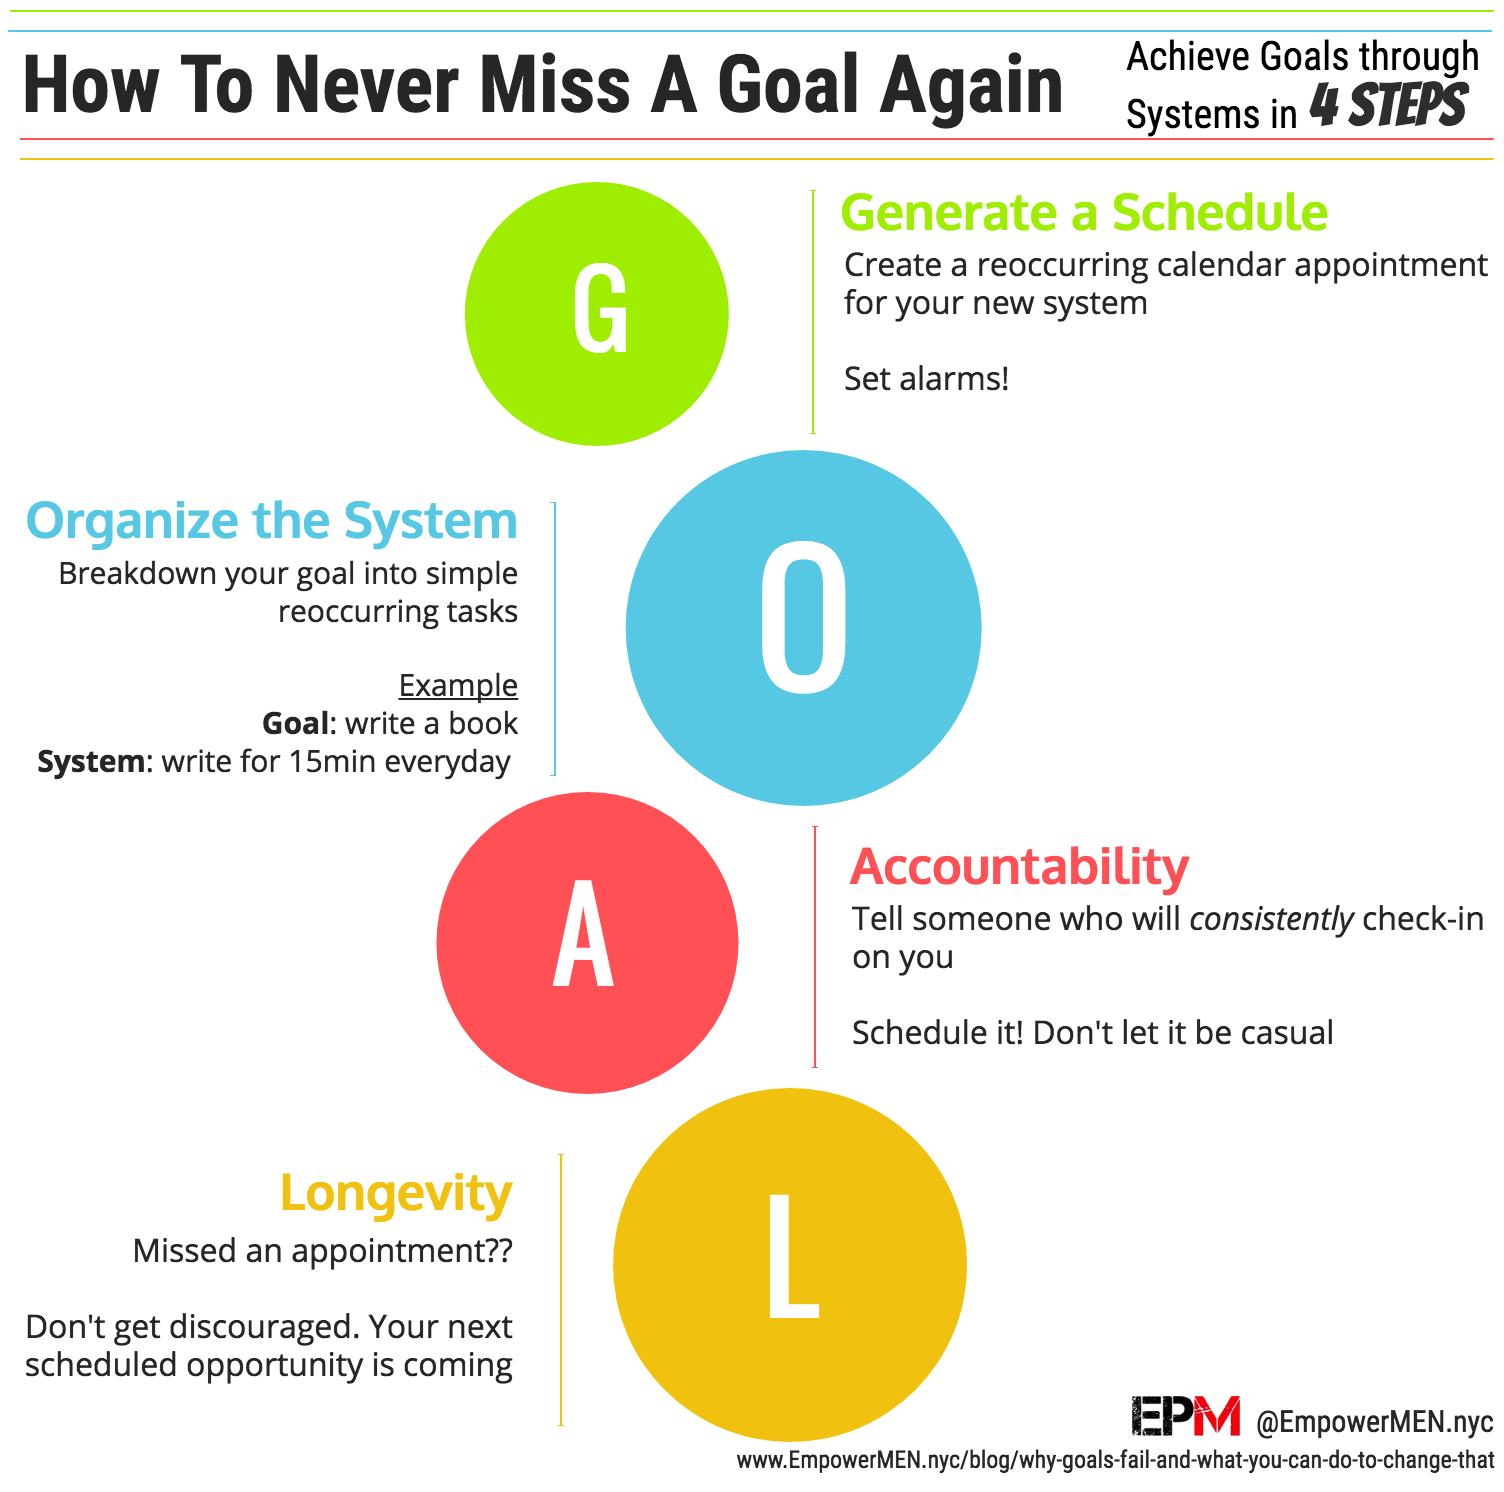 How To Never Miss Your Goals Again in 4 Steps